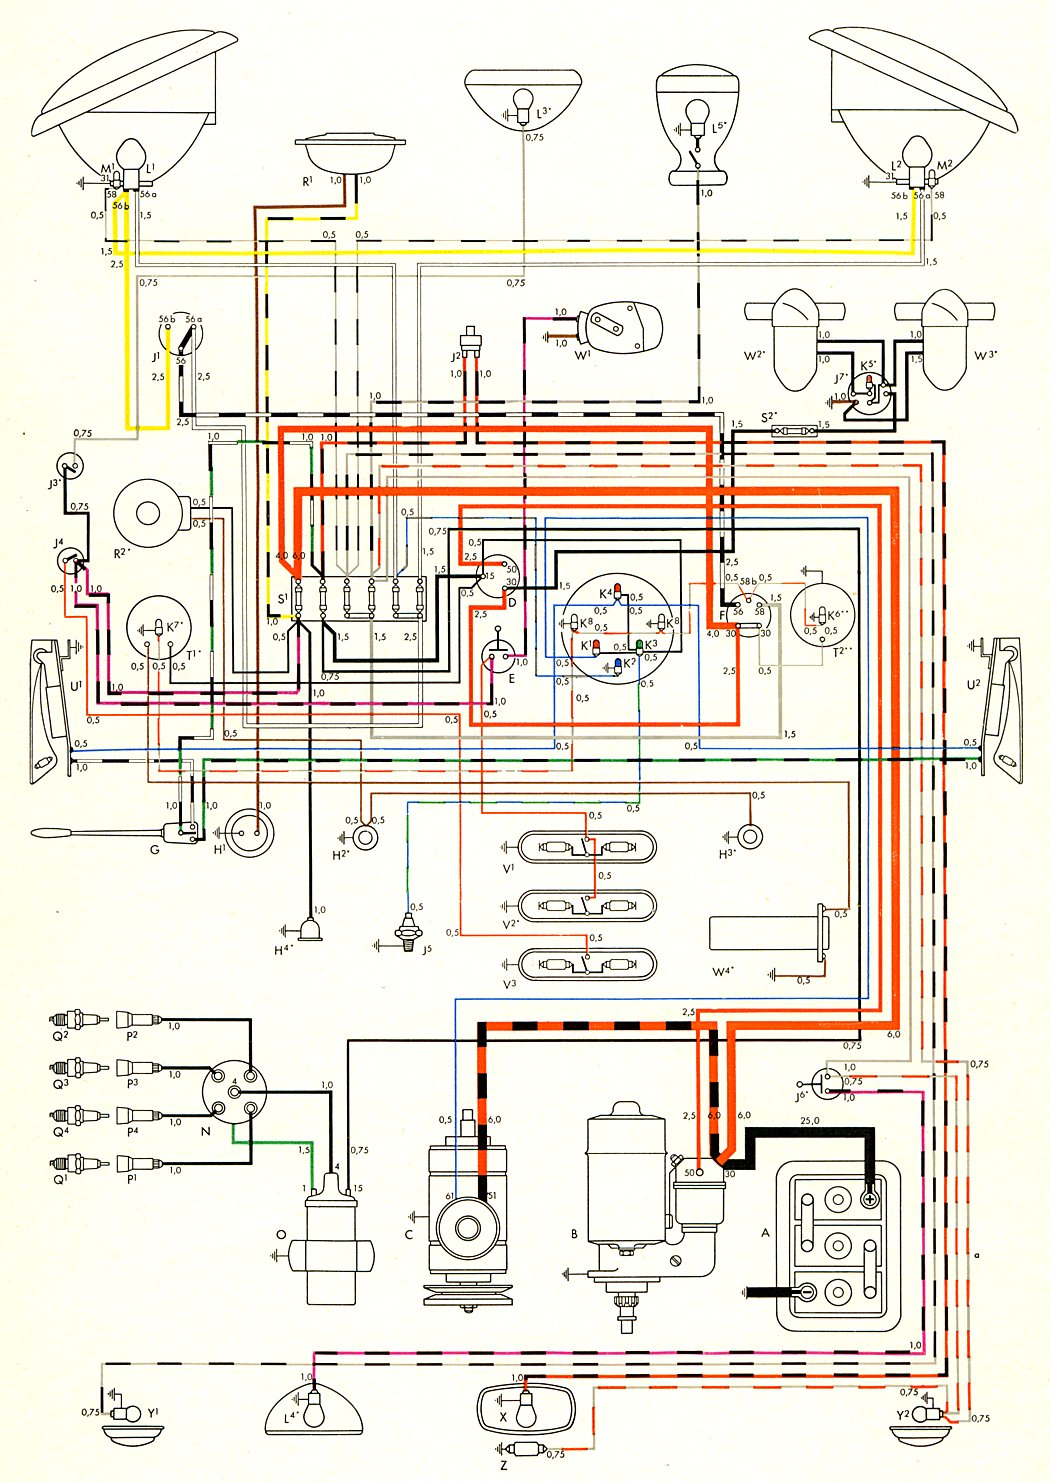 Diagram Of T4 Wiring Diagrams Source Campervan Vw Camper Library Tunnel Diode